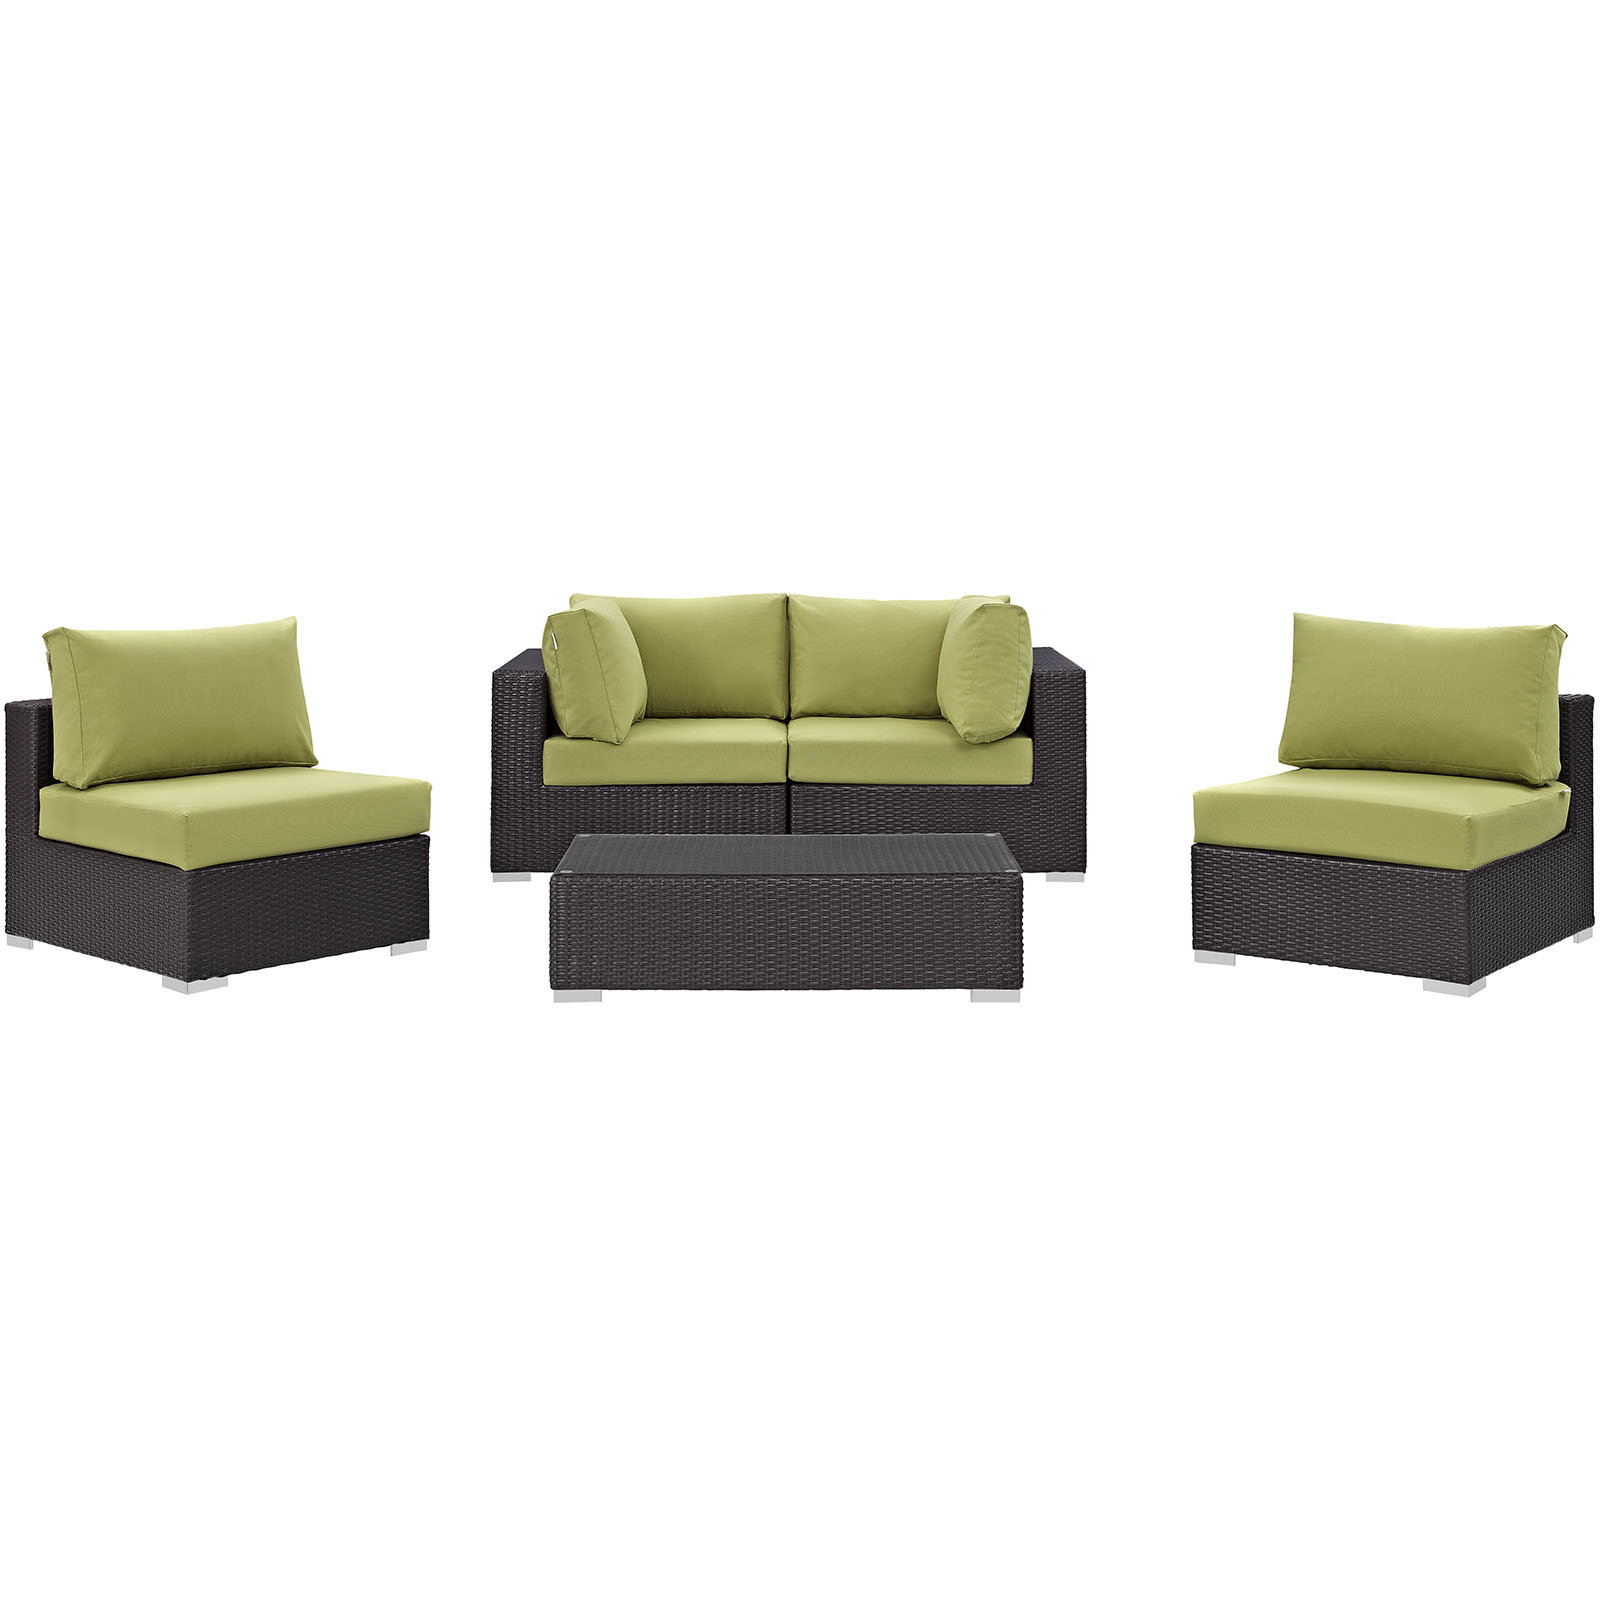 Brentwood Patio Sofas With Cushions With Regard To Well Known Brentwood 5 Piece Rattan Sectional Set With Cushions (View 7 of 18)